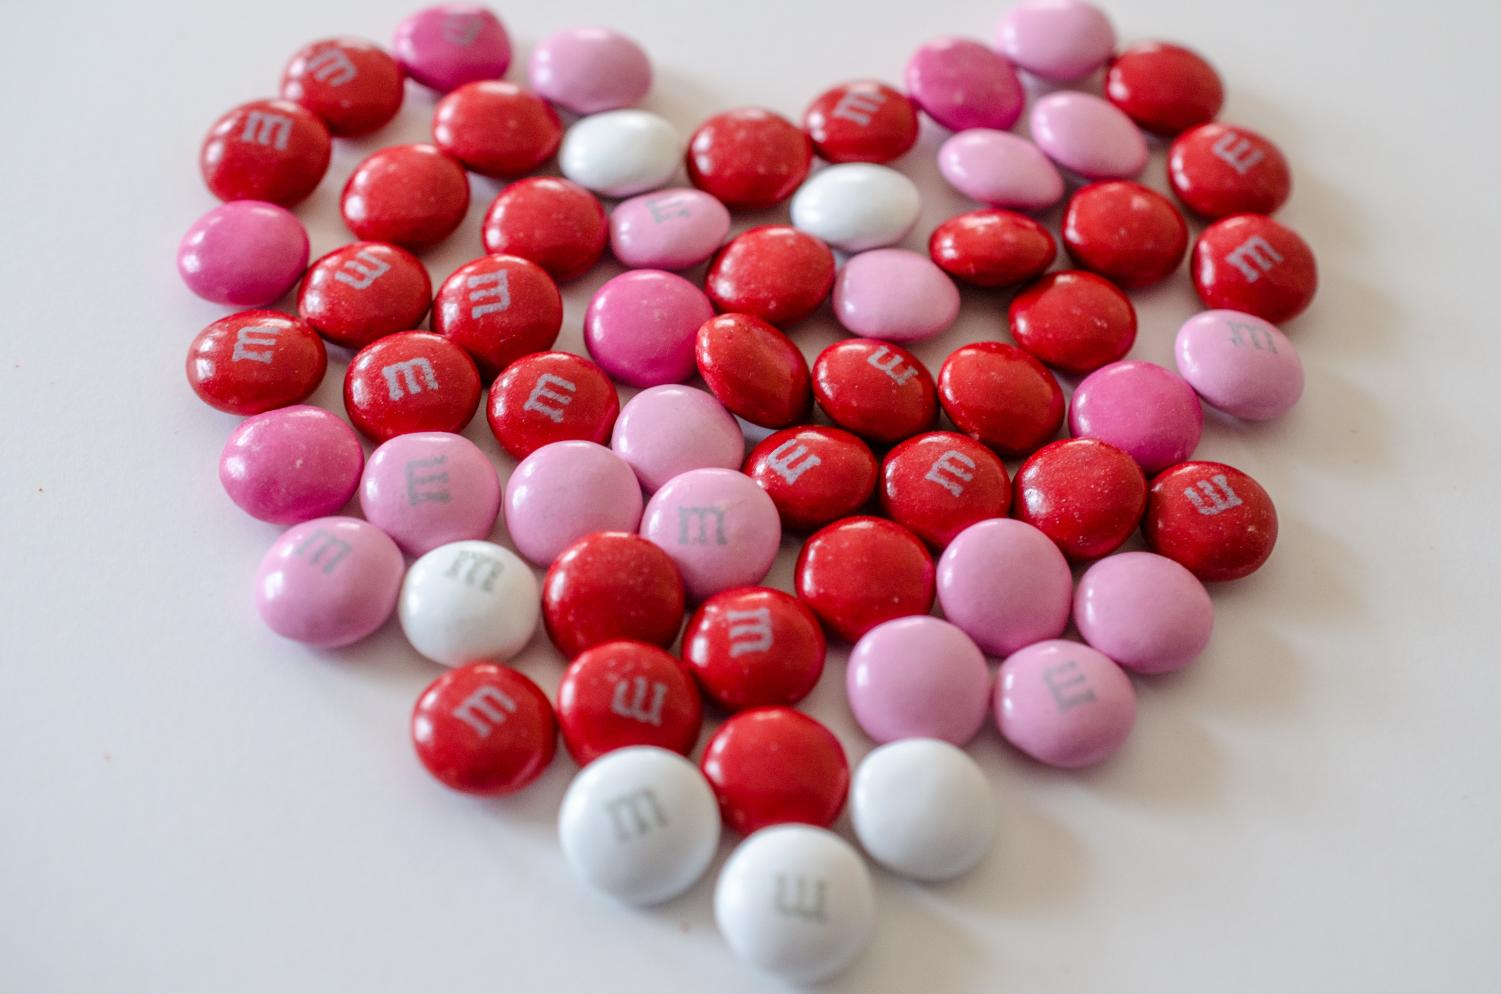 Candy is often a choice of gifts for Valentine's Day.